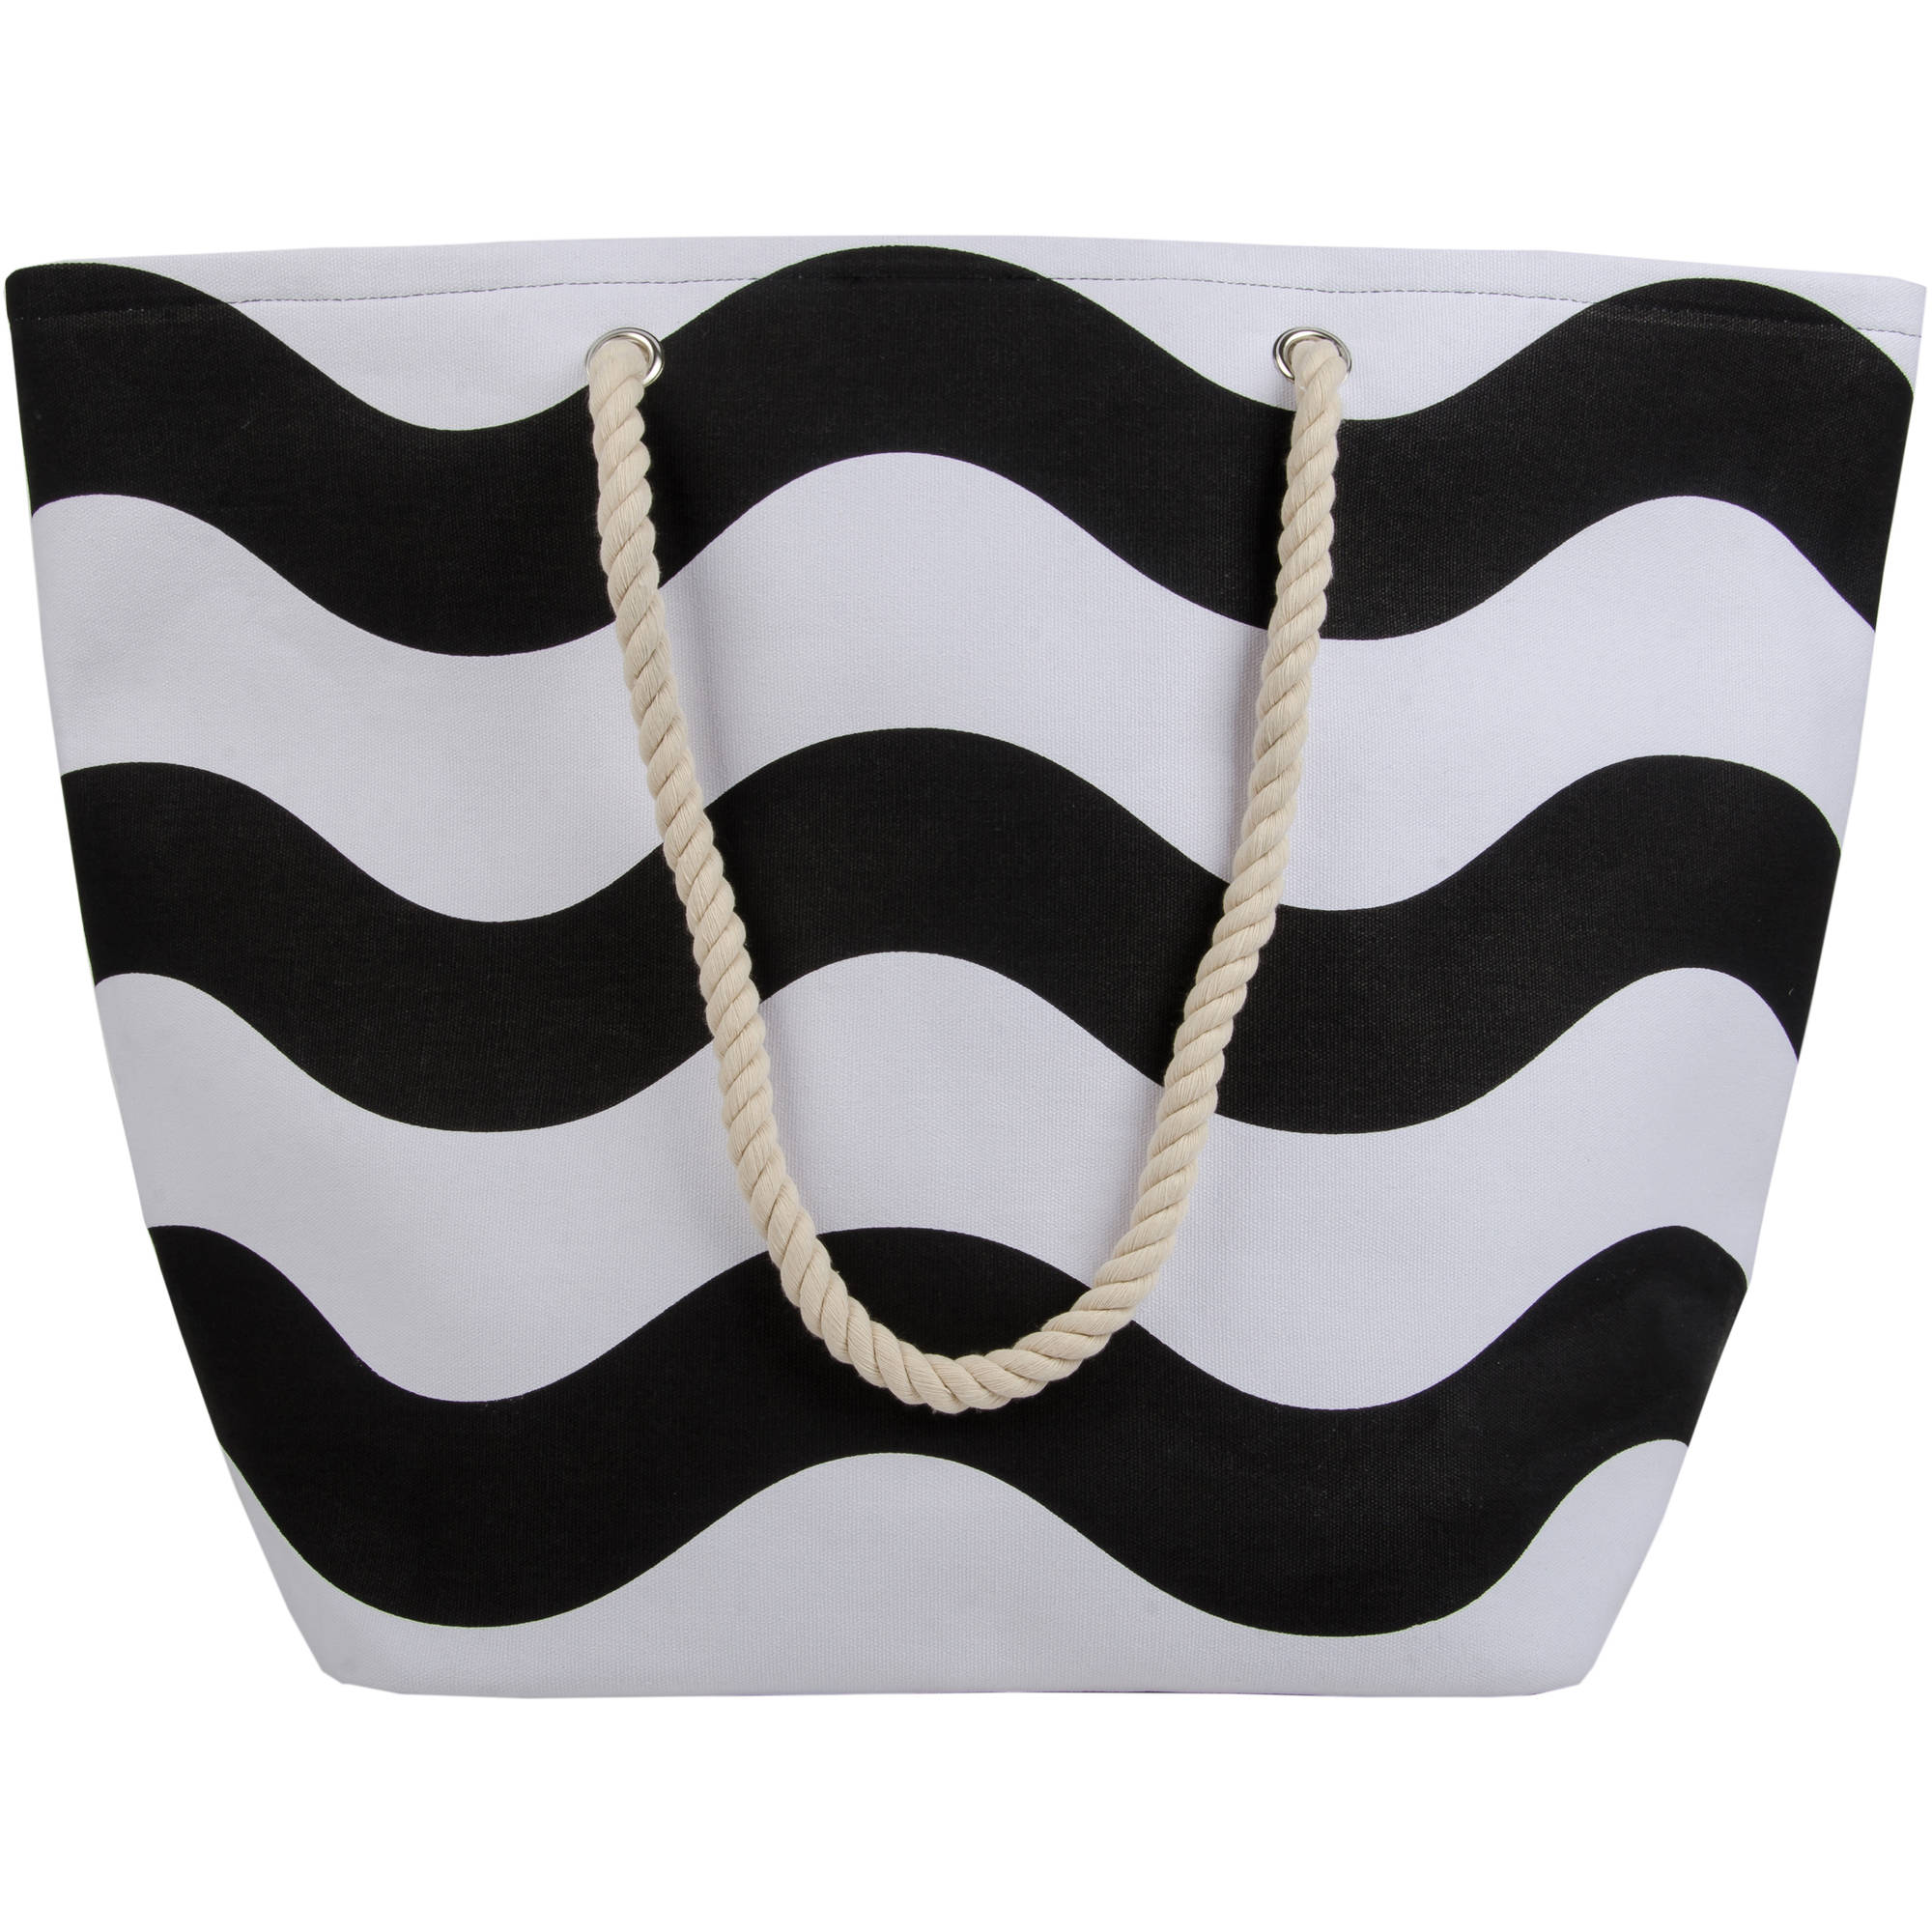 Canvas Rope Tote Black Wavy Stripe - Walmart.com